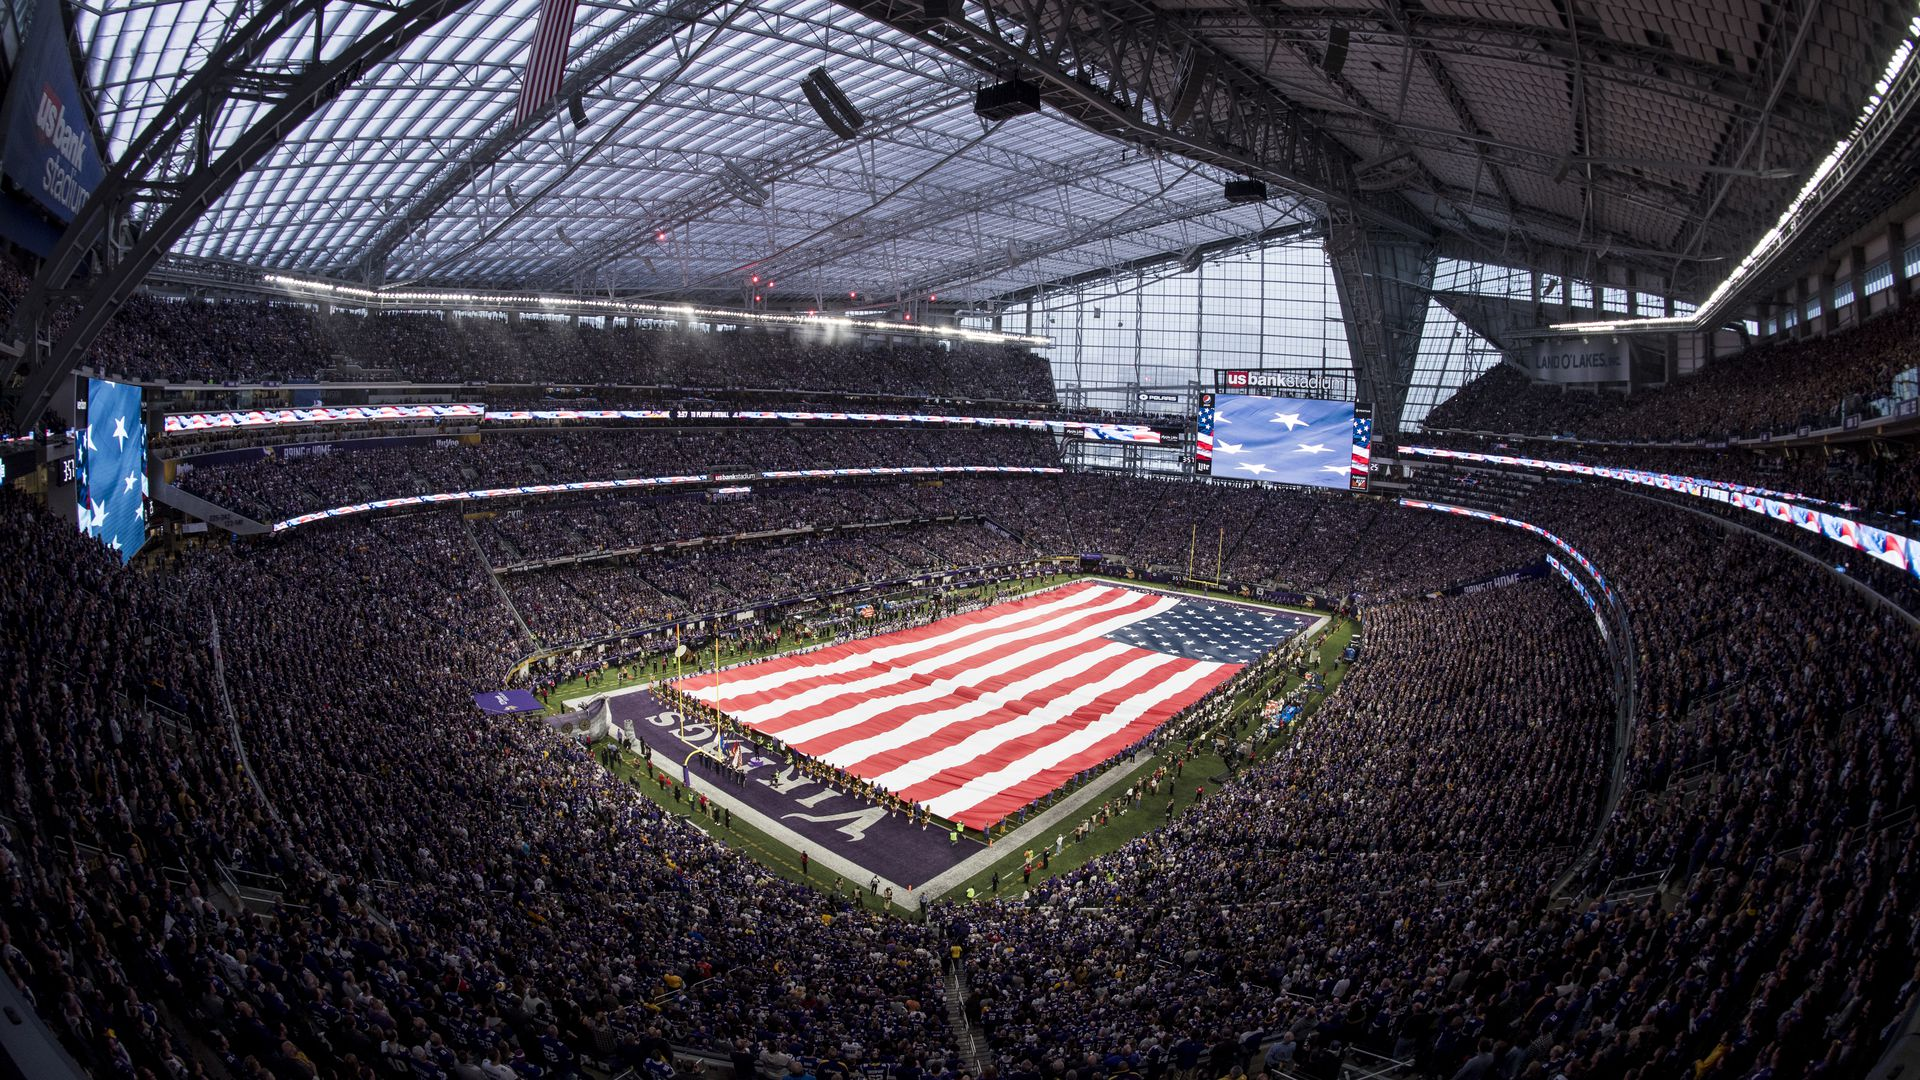 The American flag unfurled at last week's Vikings game